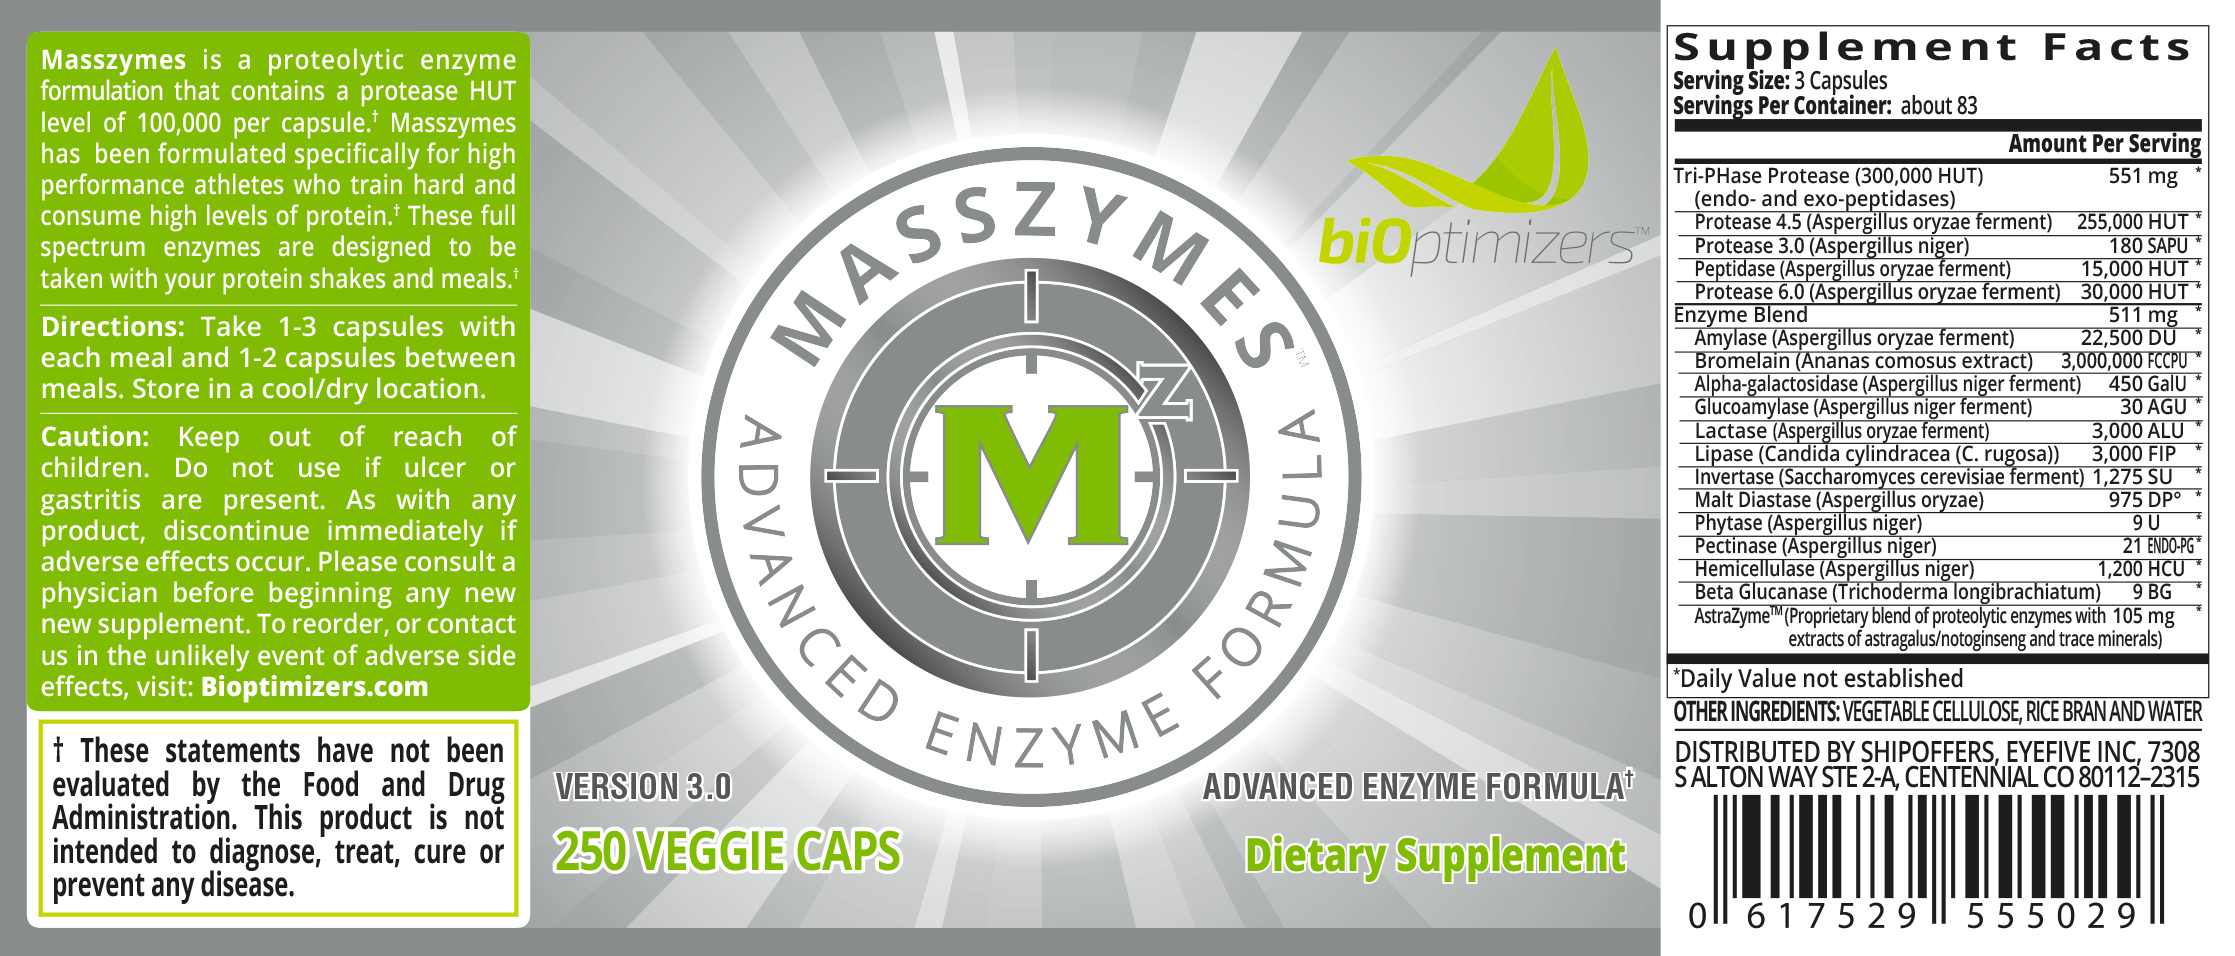 MassZymes Label